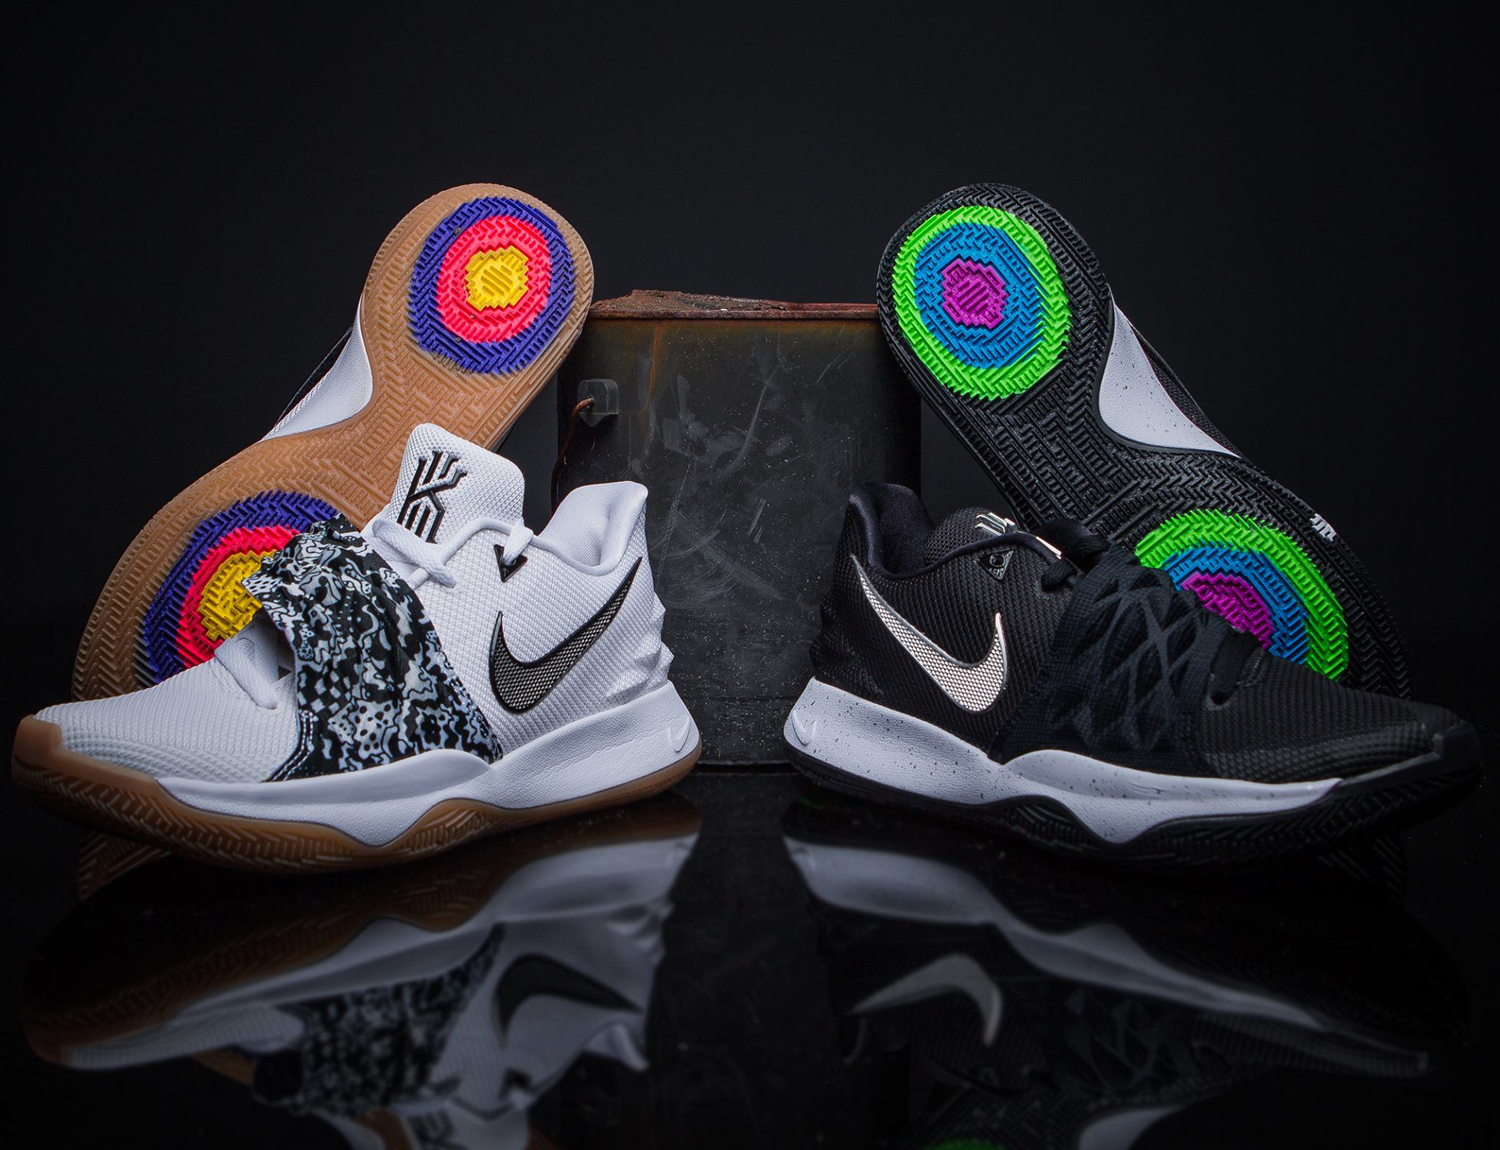 reputable site ba5bd b264d Nike Kyrie 4 Low Available in Black and White Colorways ...